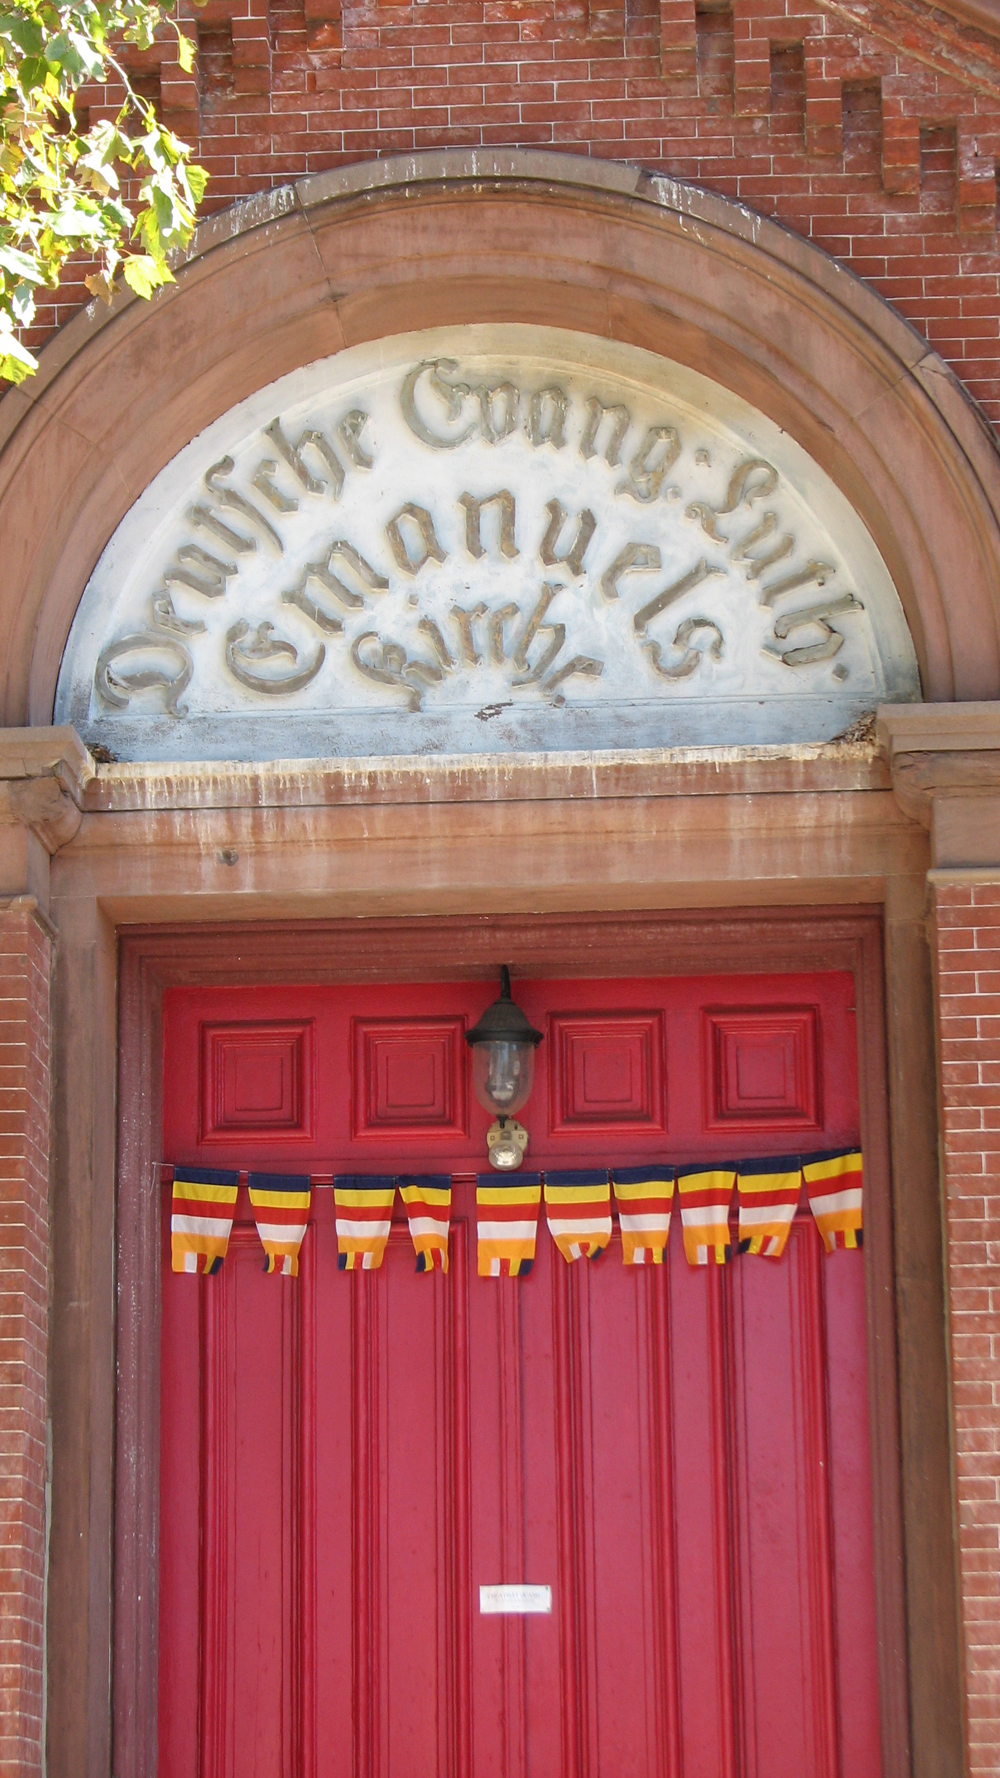 Flags of the new congregation now hang below the original German inscription on the building entrance.